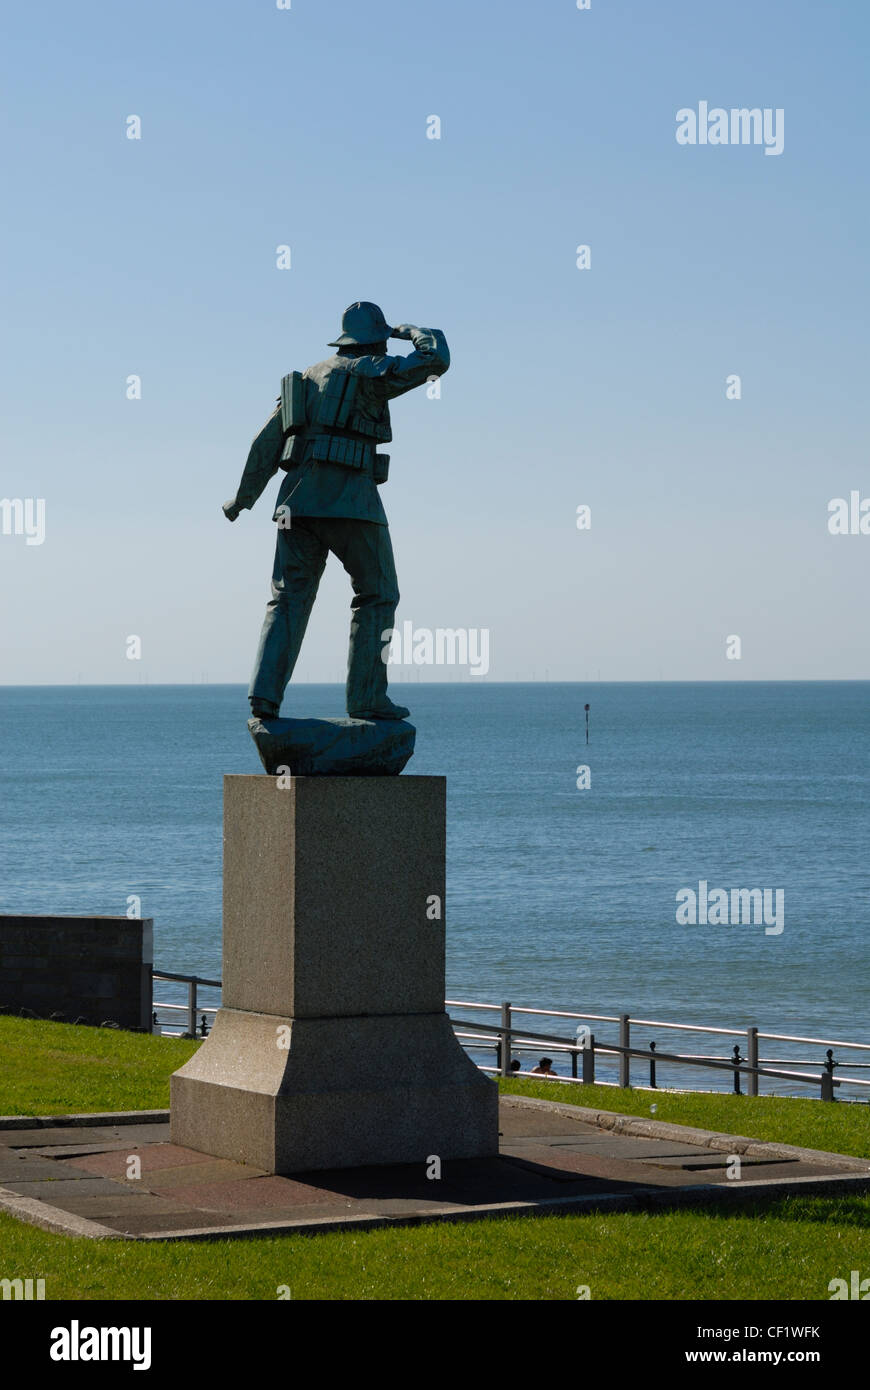 Memorial to the crew of the surfboat 'Friend to all nations' which went down with all lives lost in 1897. - Stock Image